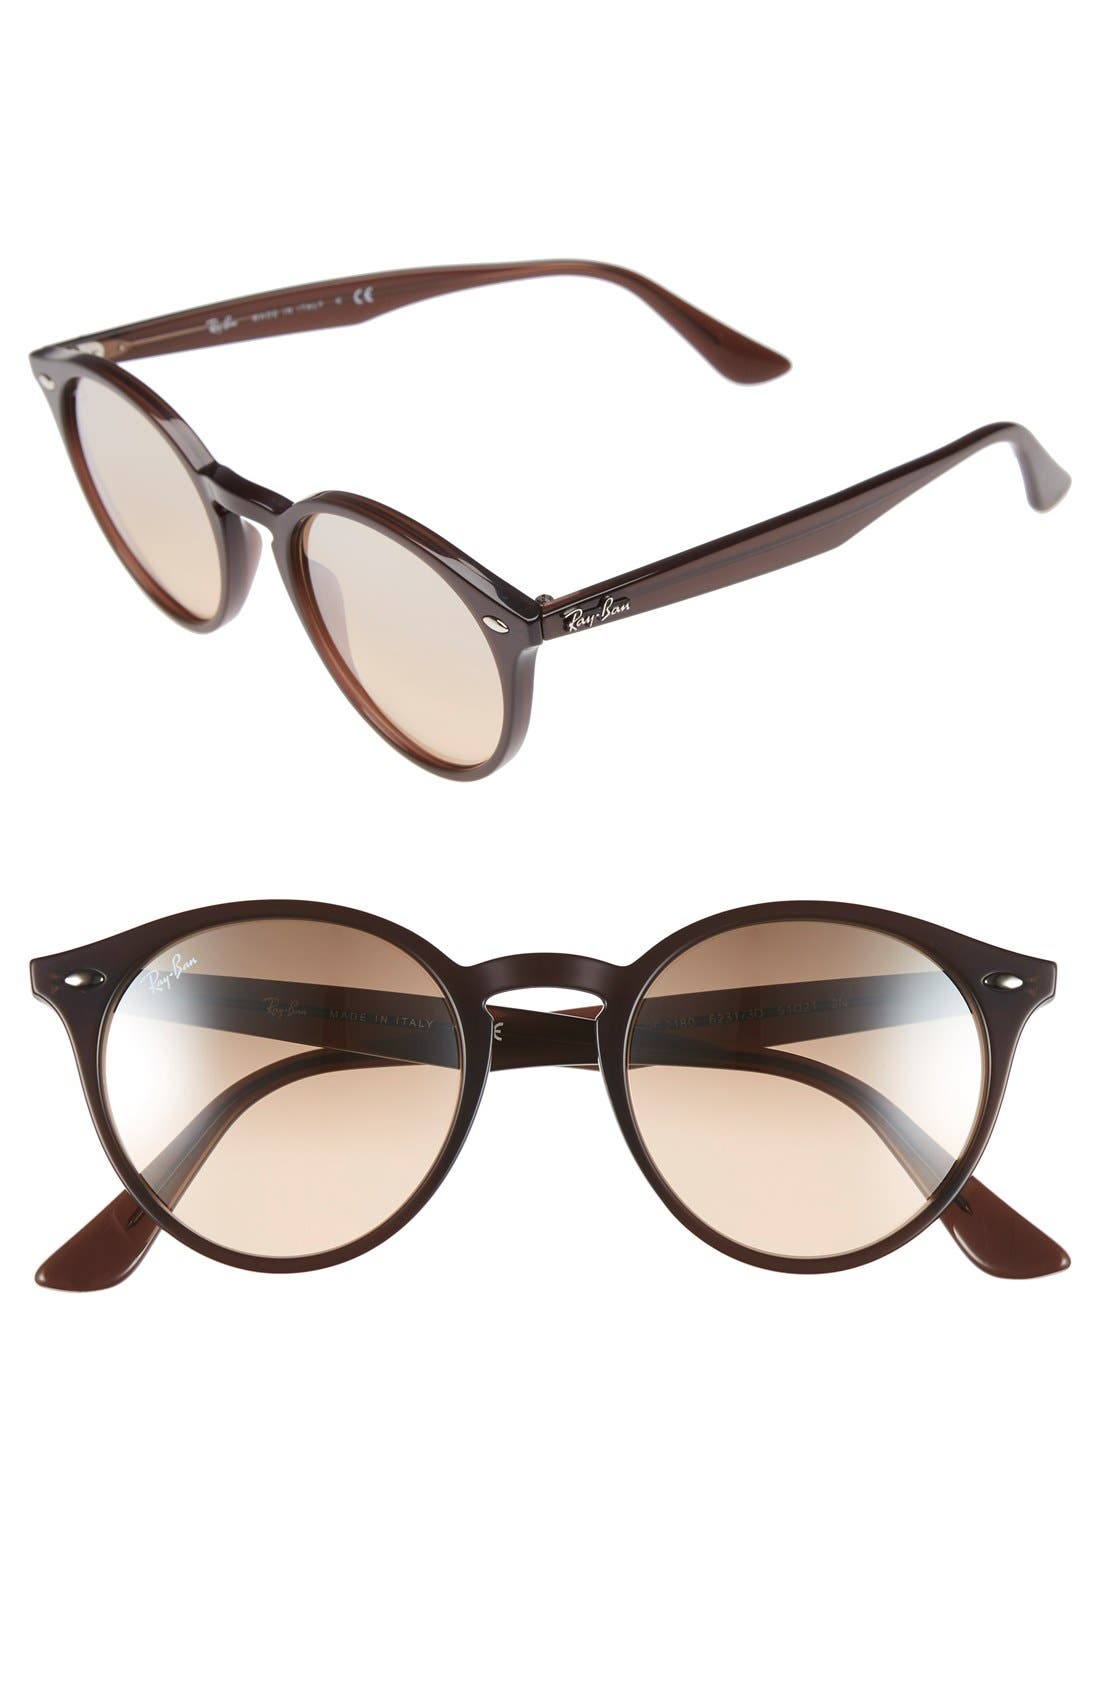 Highstreet 51mm Round Sunglasses,                             Main thumbnail 4, color,